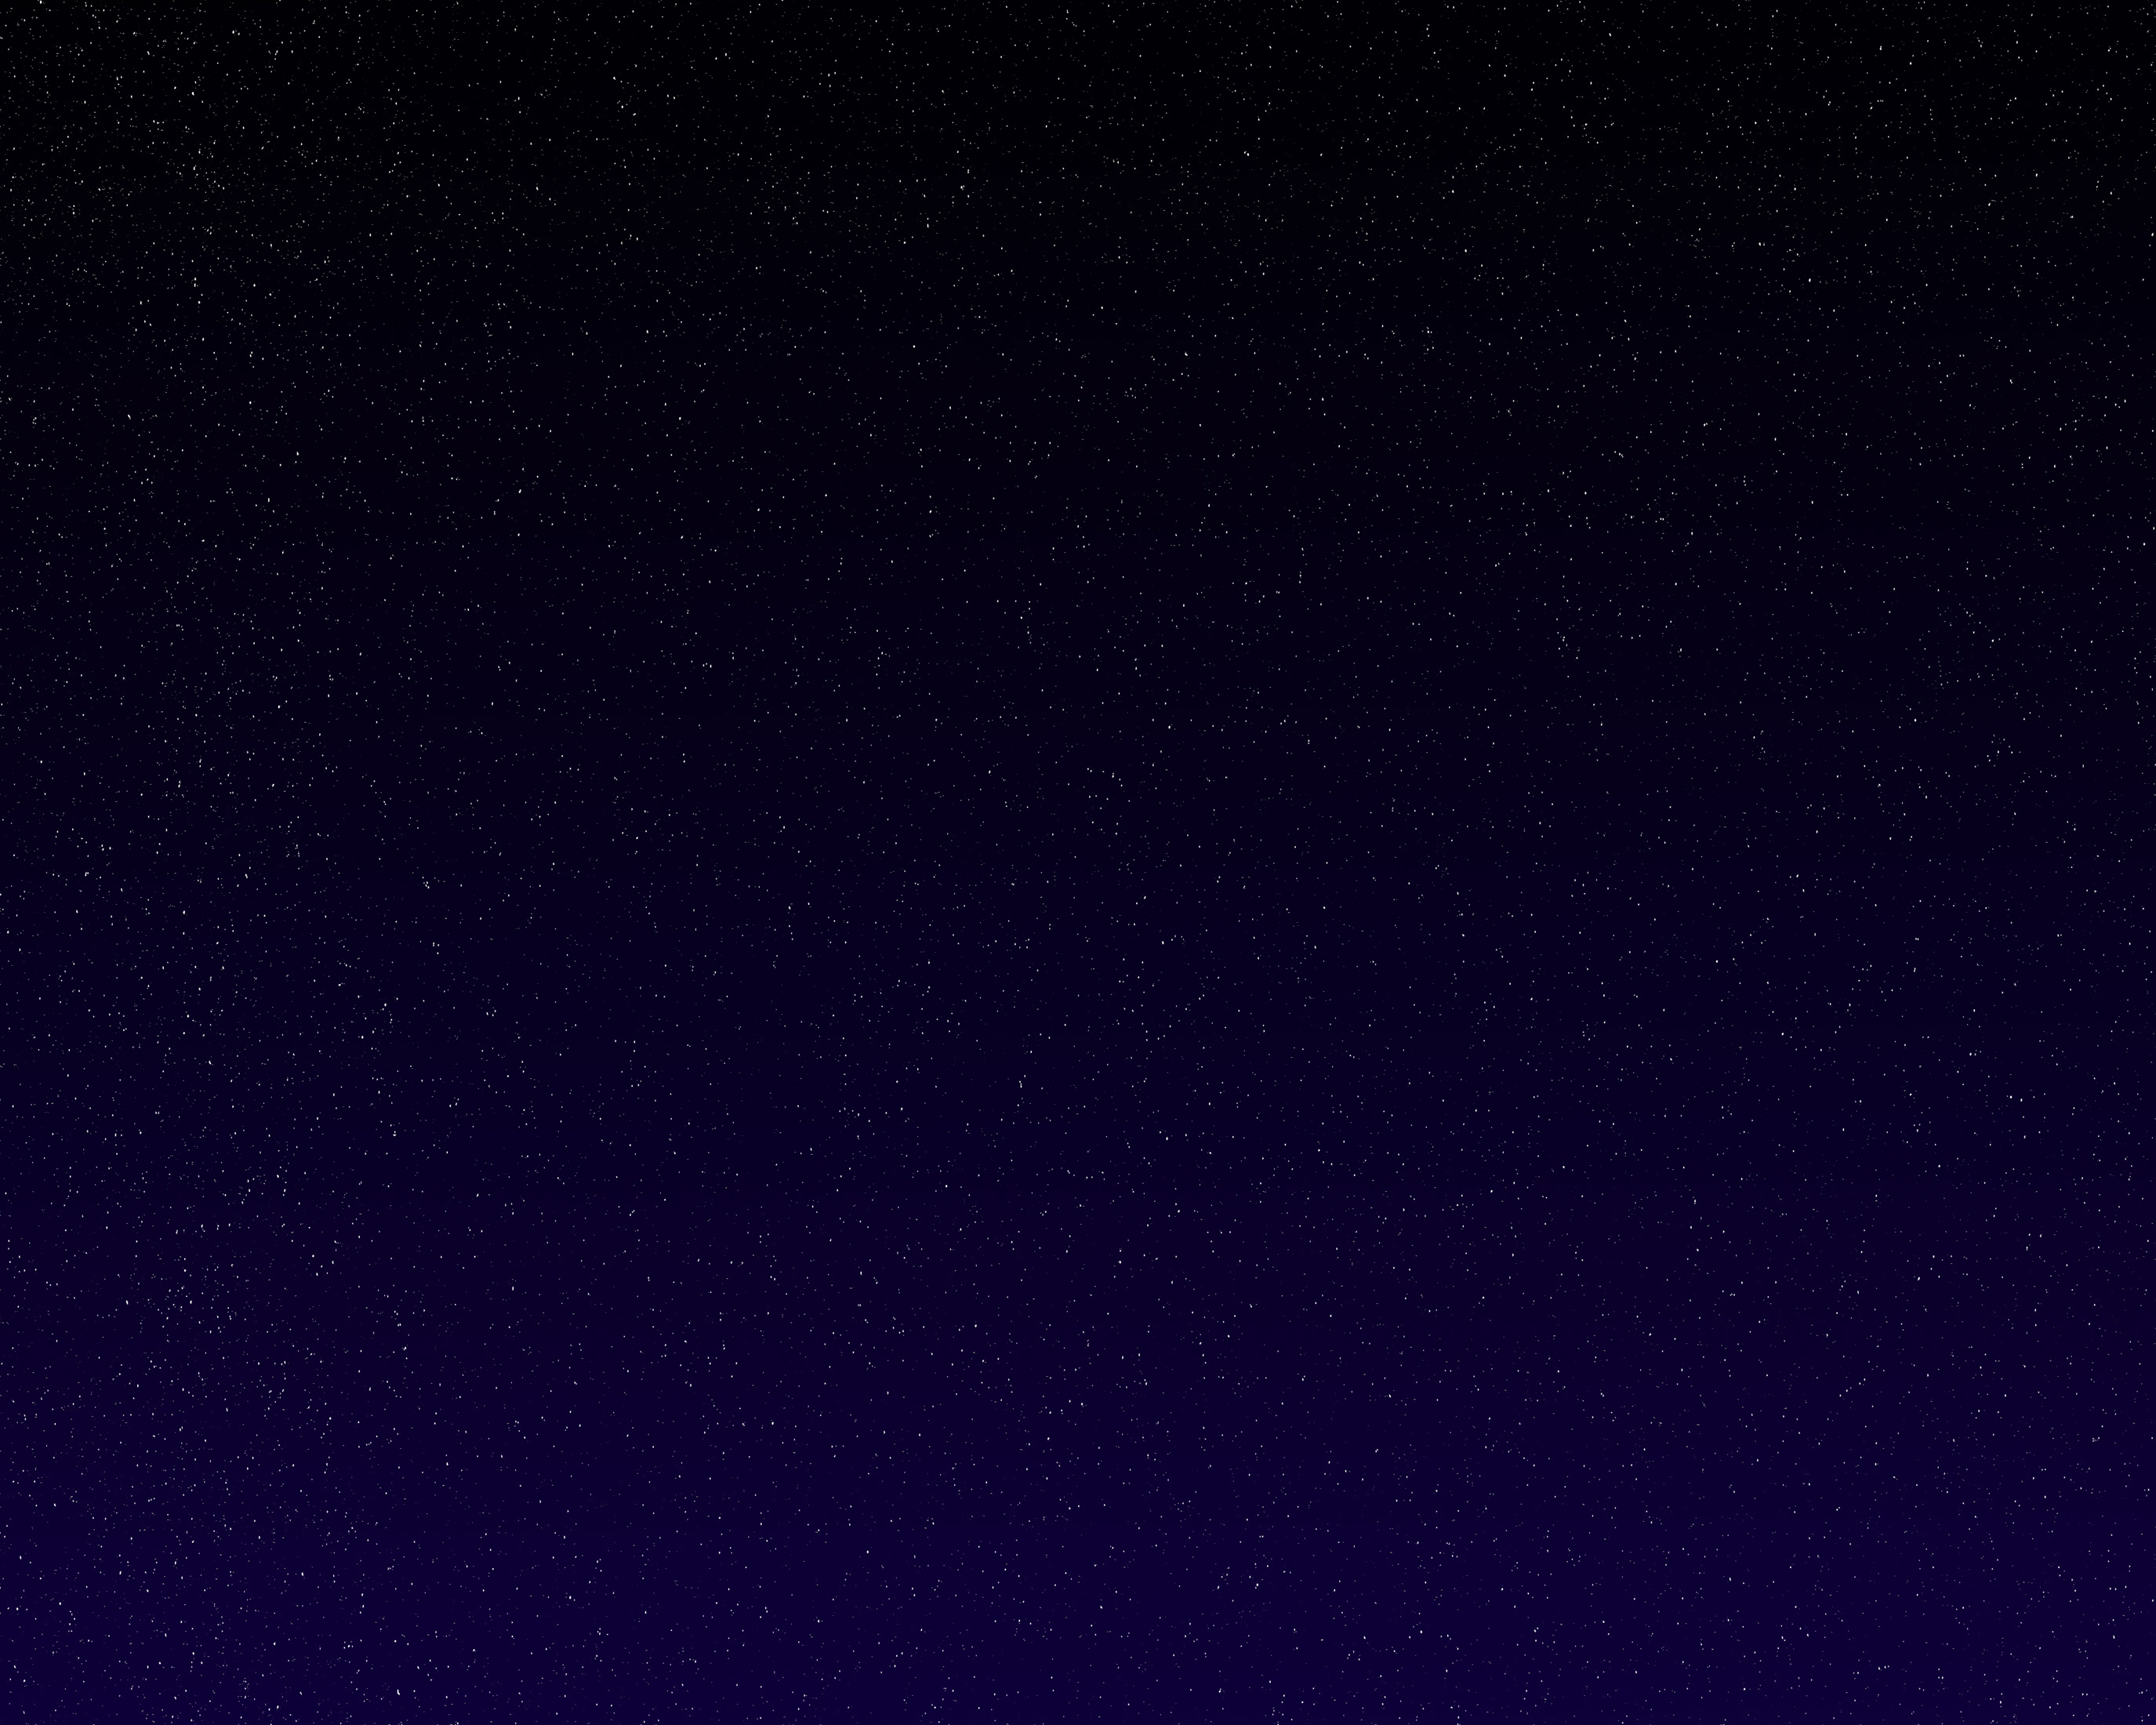 Simple starry space background, Black, Blue, Espace, Etoiles, HQ Photo